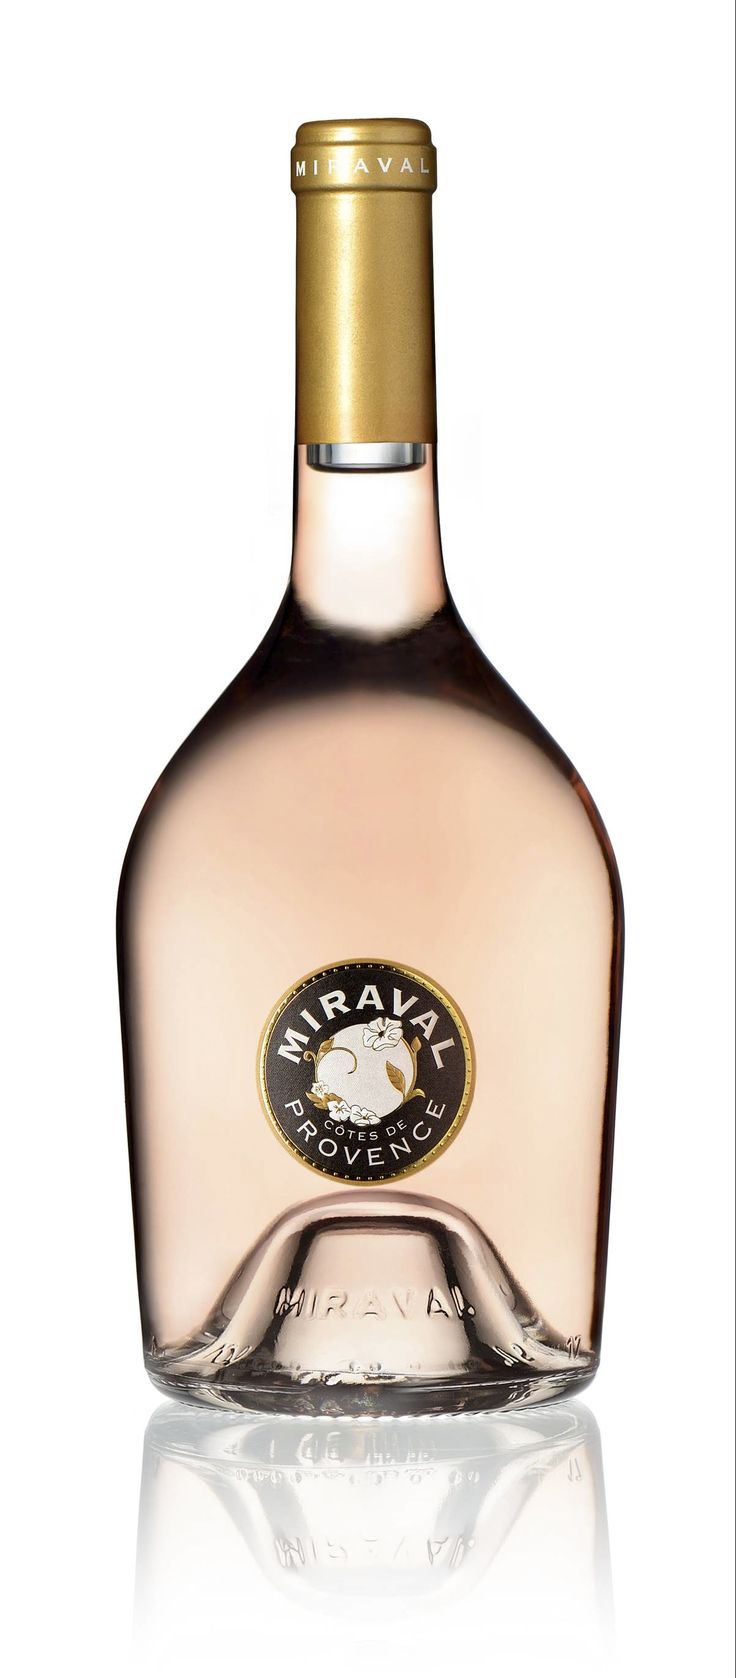 "Wine Spectator - Wine of the Day - #ChateauMiraval Rosé 2014 - ""The finest rosé yet from this estate (the wine is made by the top notch team at Chateau Beaucastel), the light pink colored 2014 Cotes de Provence Rose sports a fresh and lively bouquet of wild strawberries, raspberries and white flowers to go with a supple, lightly textured, silky and seamless feel on the palate. About as gulp-able and hard to resist as they come, it's a killer rosé to drink over the coming 6-8 months."""